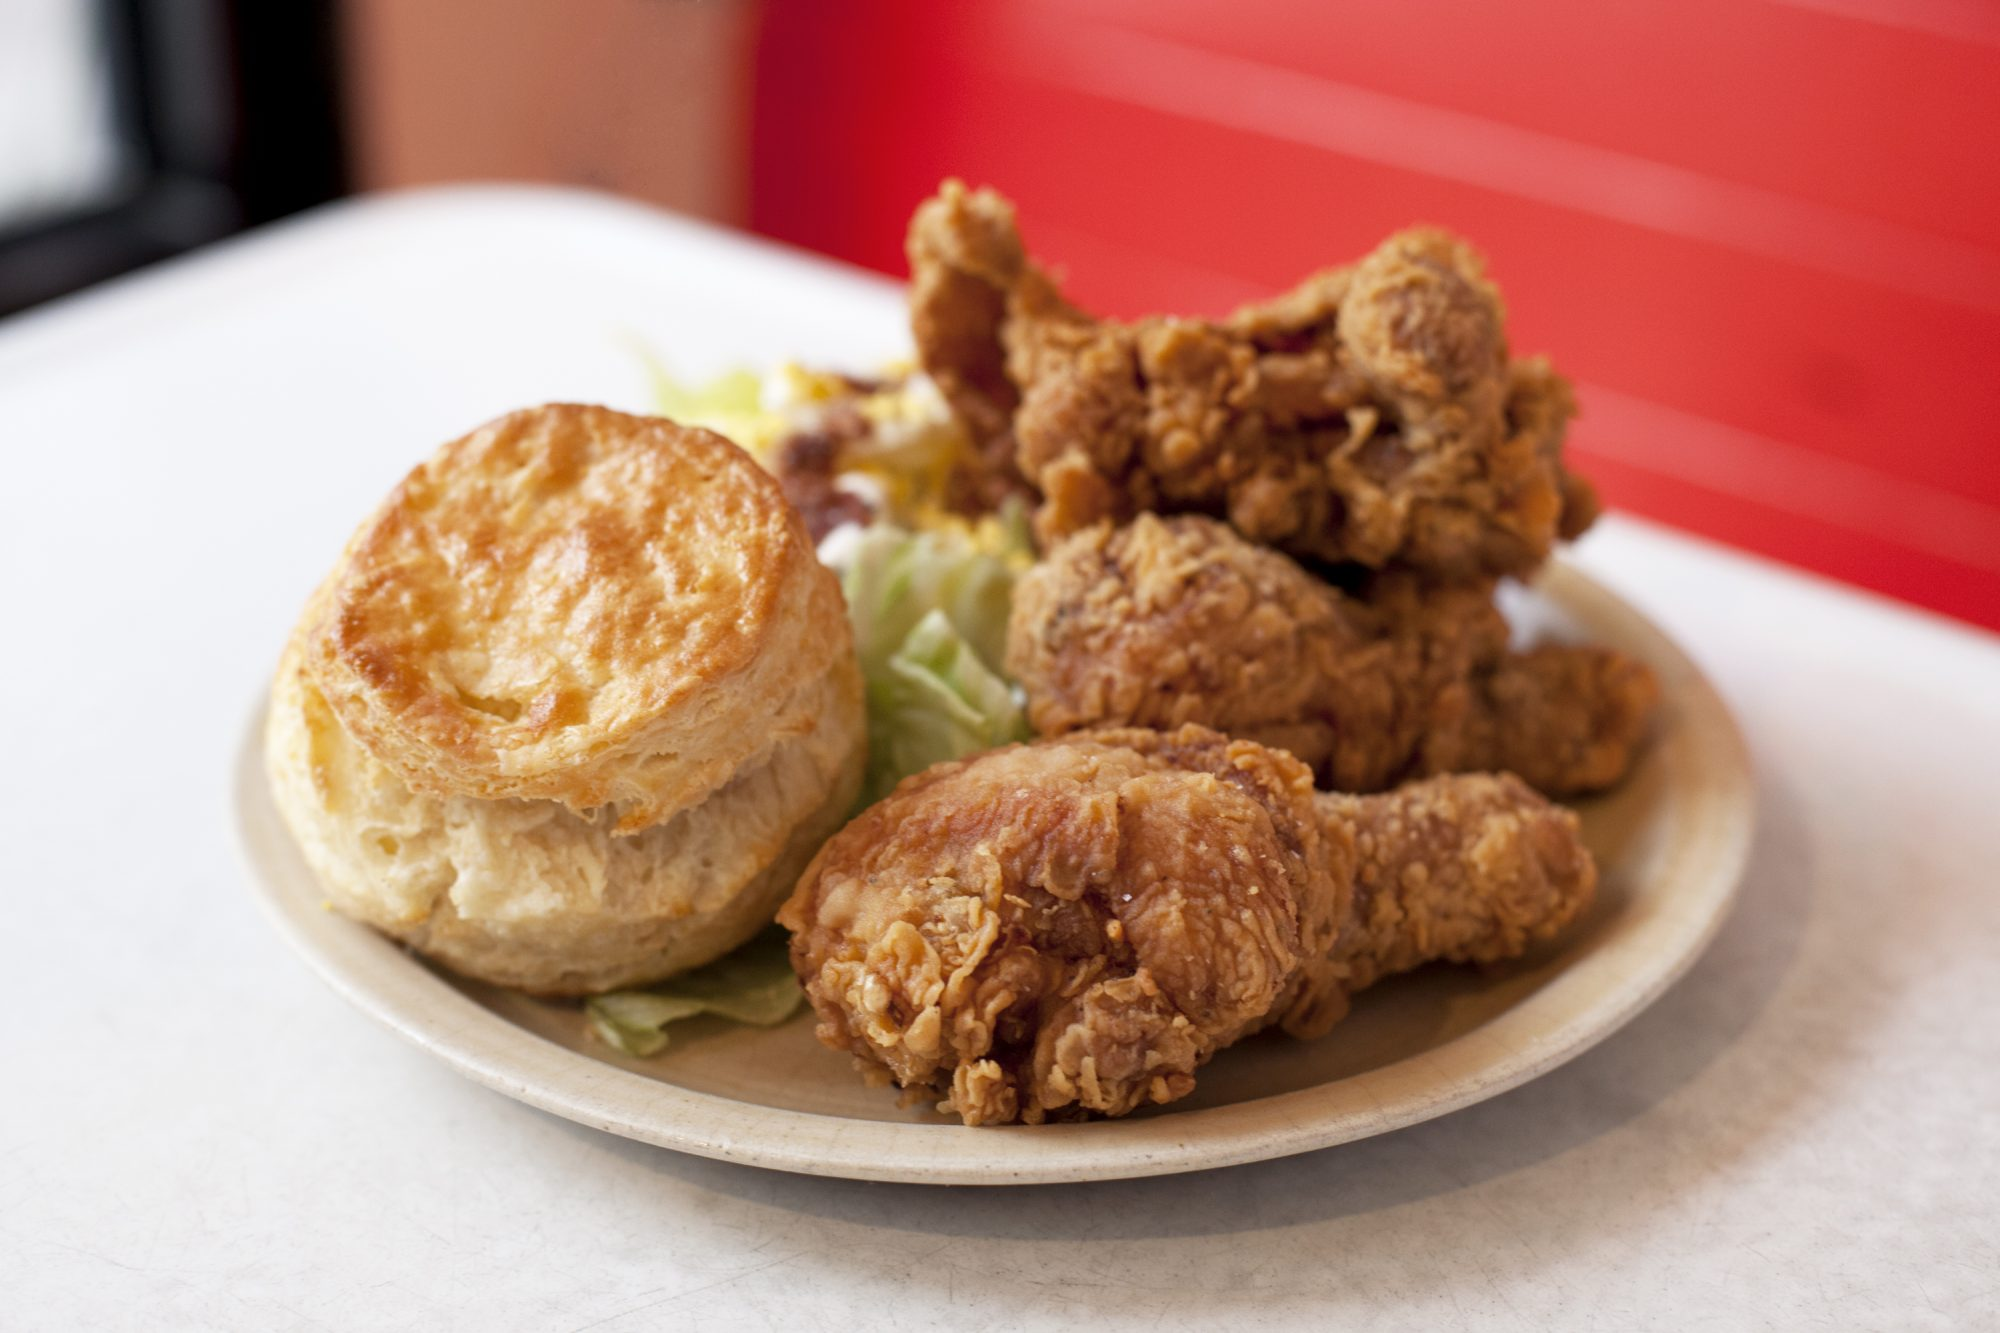 Fried Chicken: Pies N Thighs